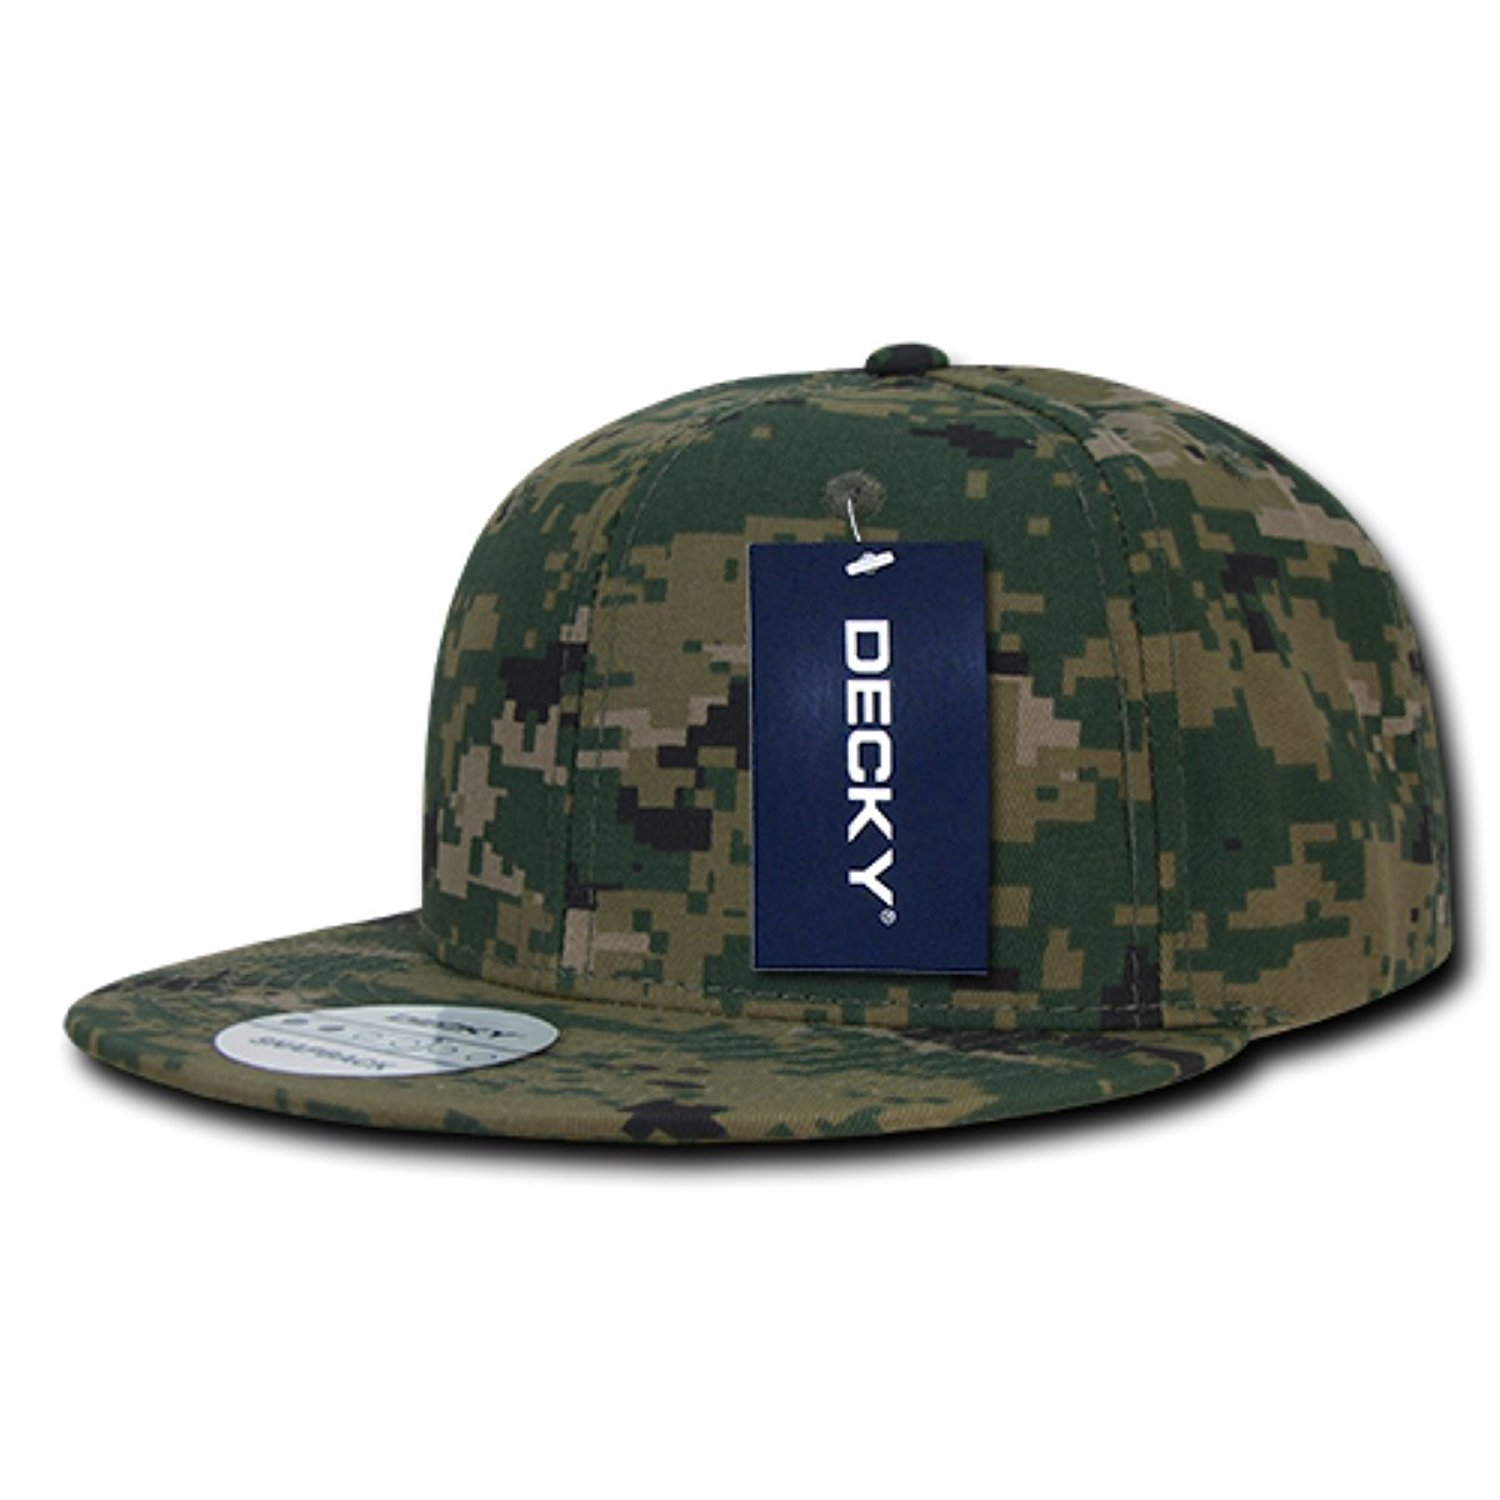 Buy DECKY Digital Camo Retro Flat Bill High Crown 6 Panel Snapback ... fc8eb7f4417